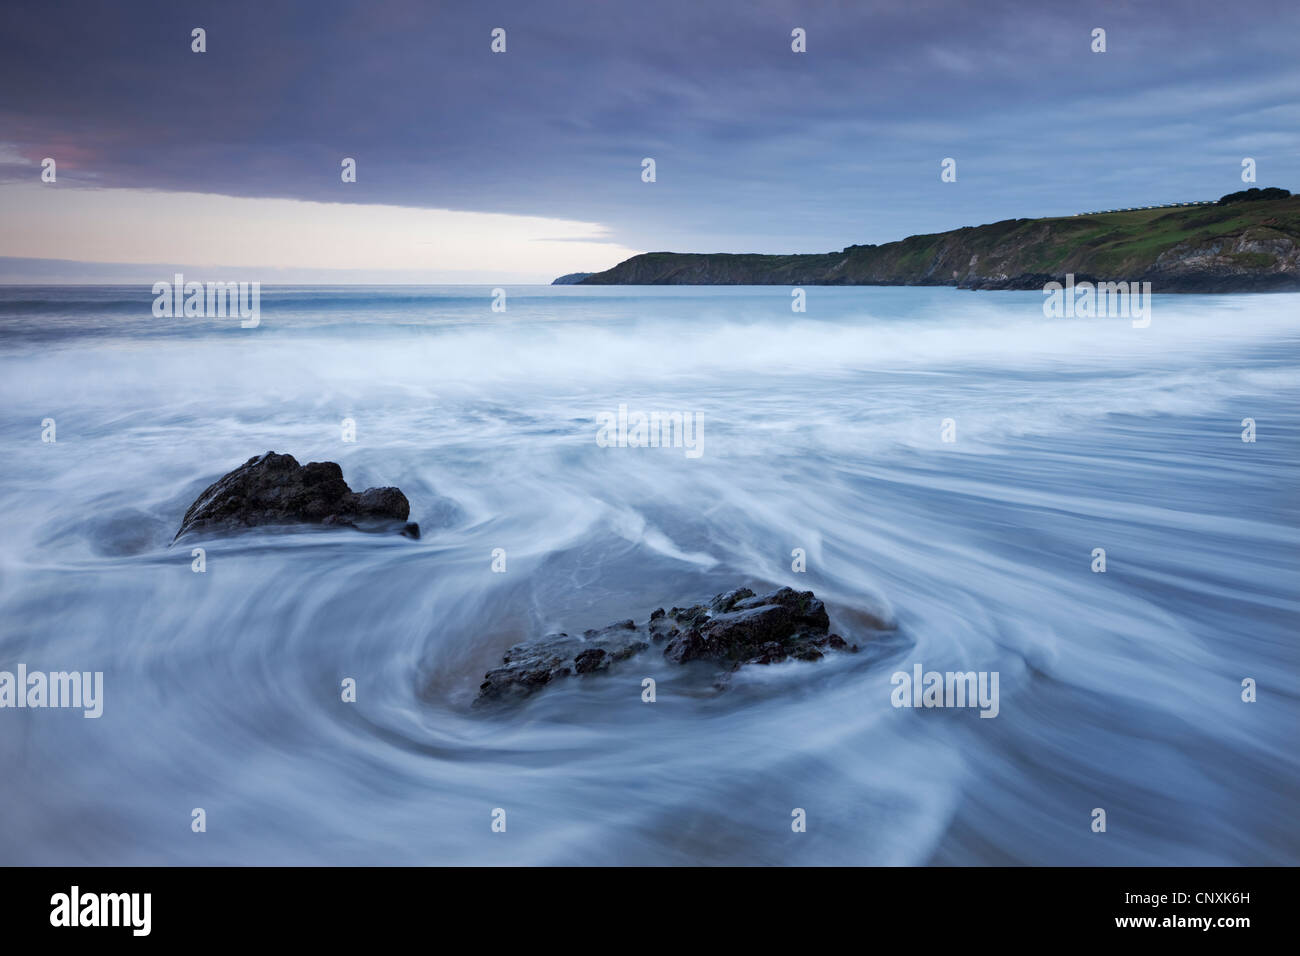 Waves rush onto the beach at Kennack Sands, Lizard Peninsula, Cornwall, England. Spring (May) 2011. - Stock Image